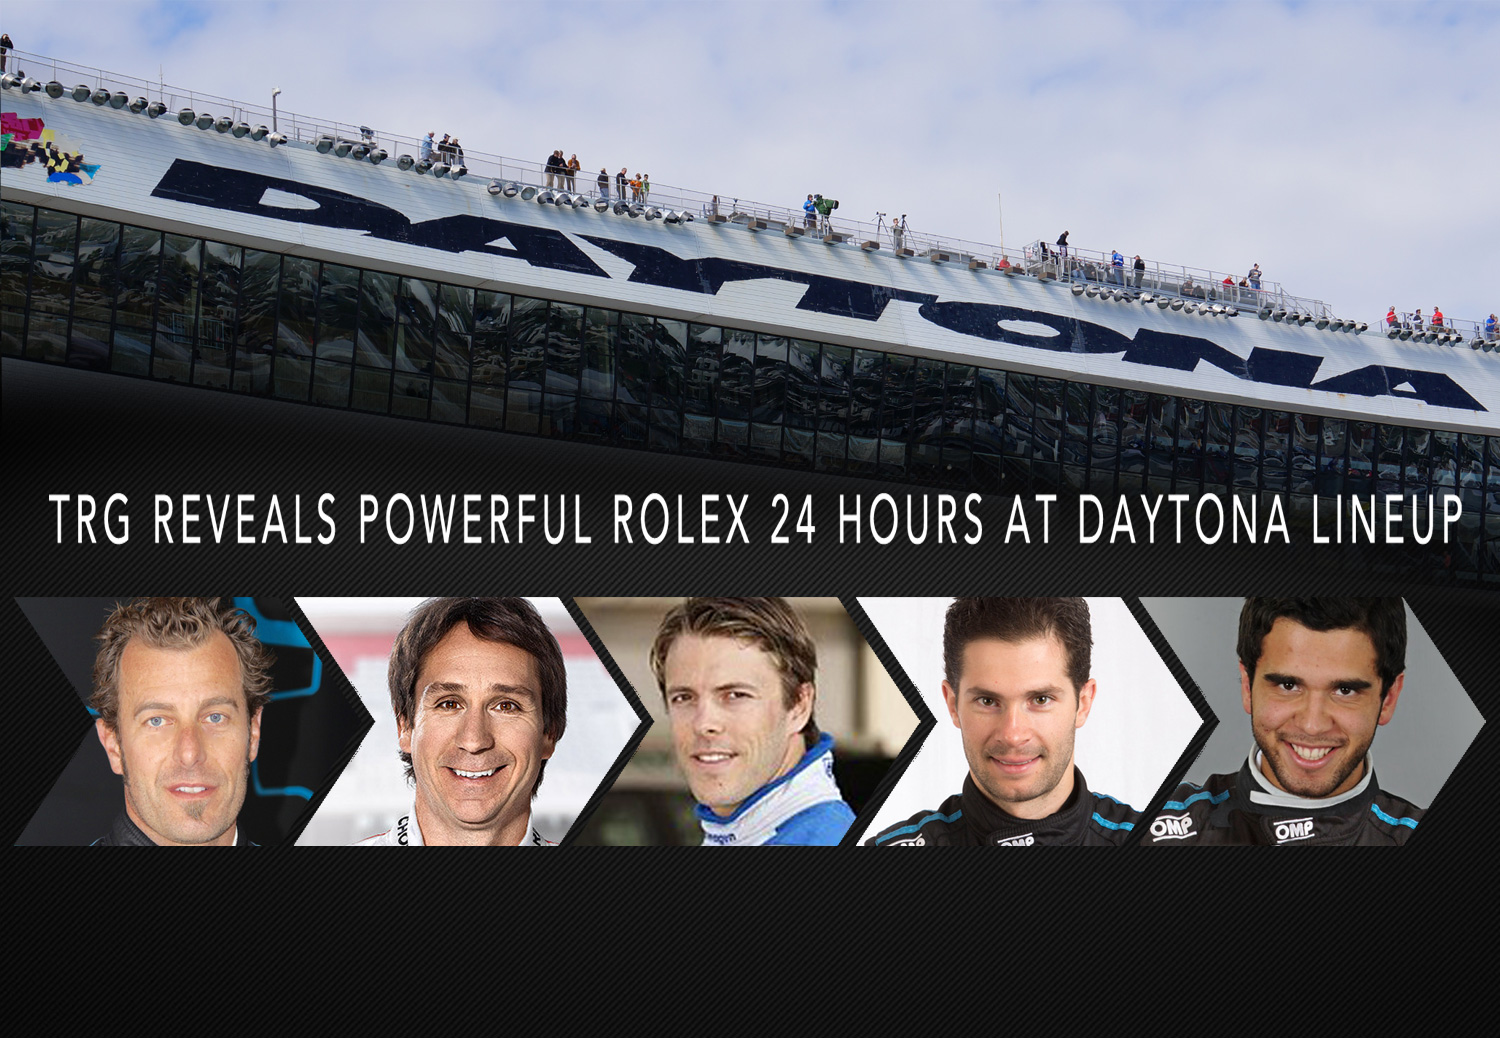 TRG Reveals Powerful Rolex 24 Hours at Daytona Lineup